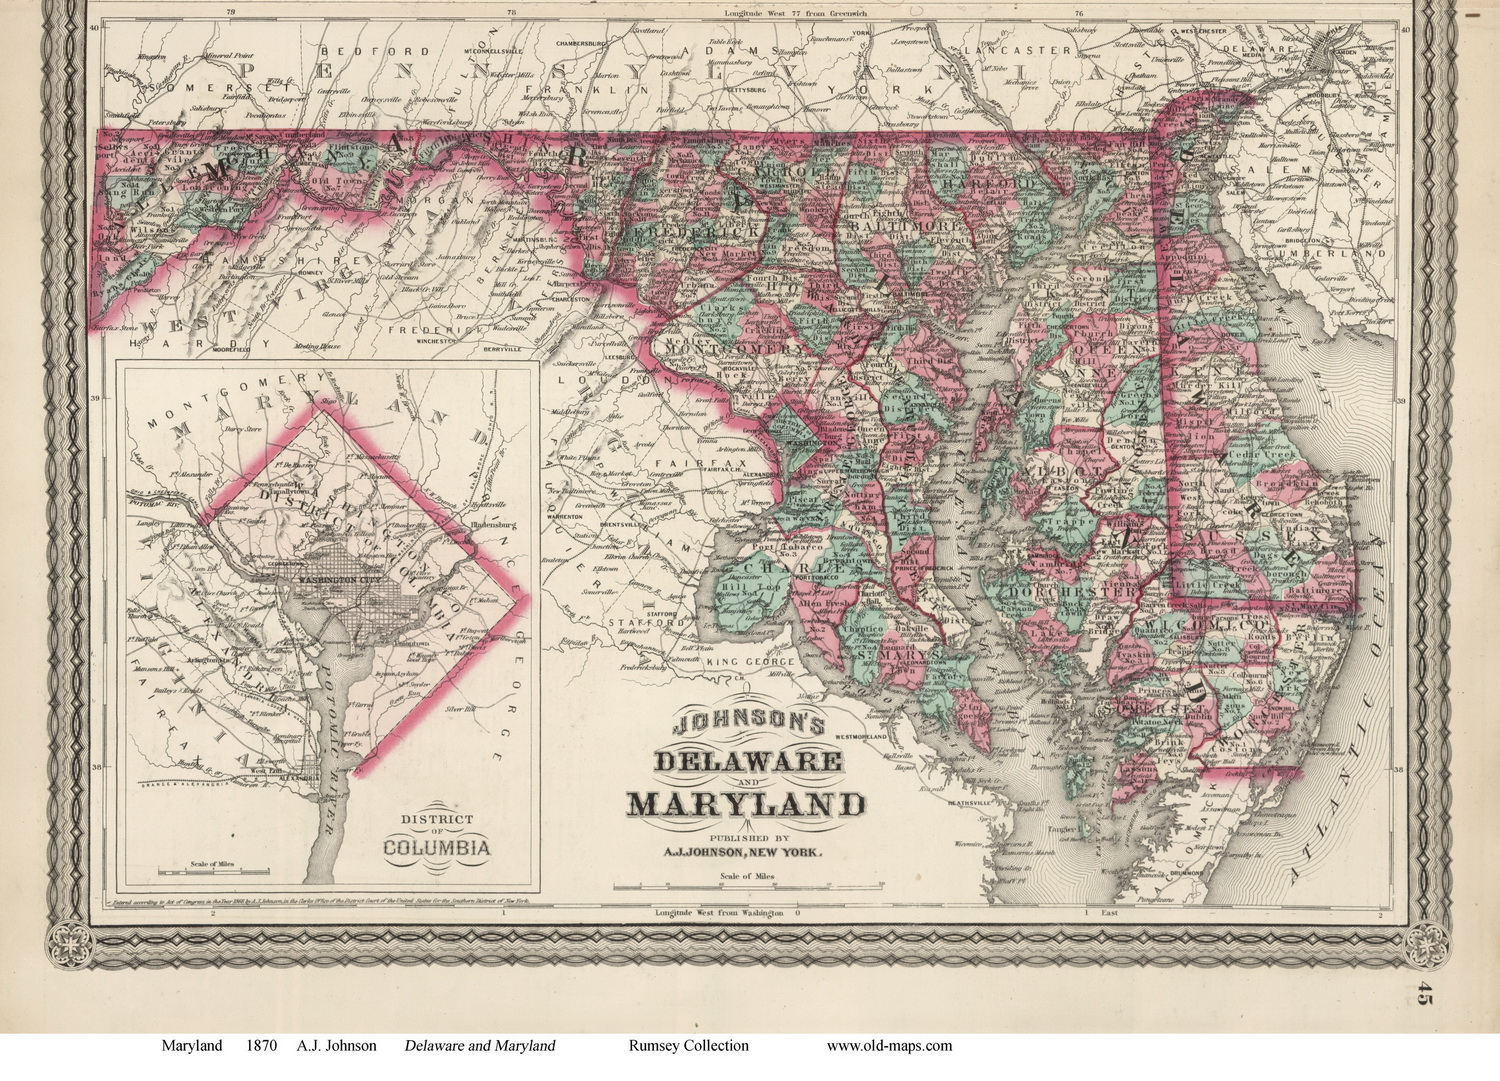 Maryland State Maps Page 5